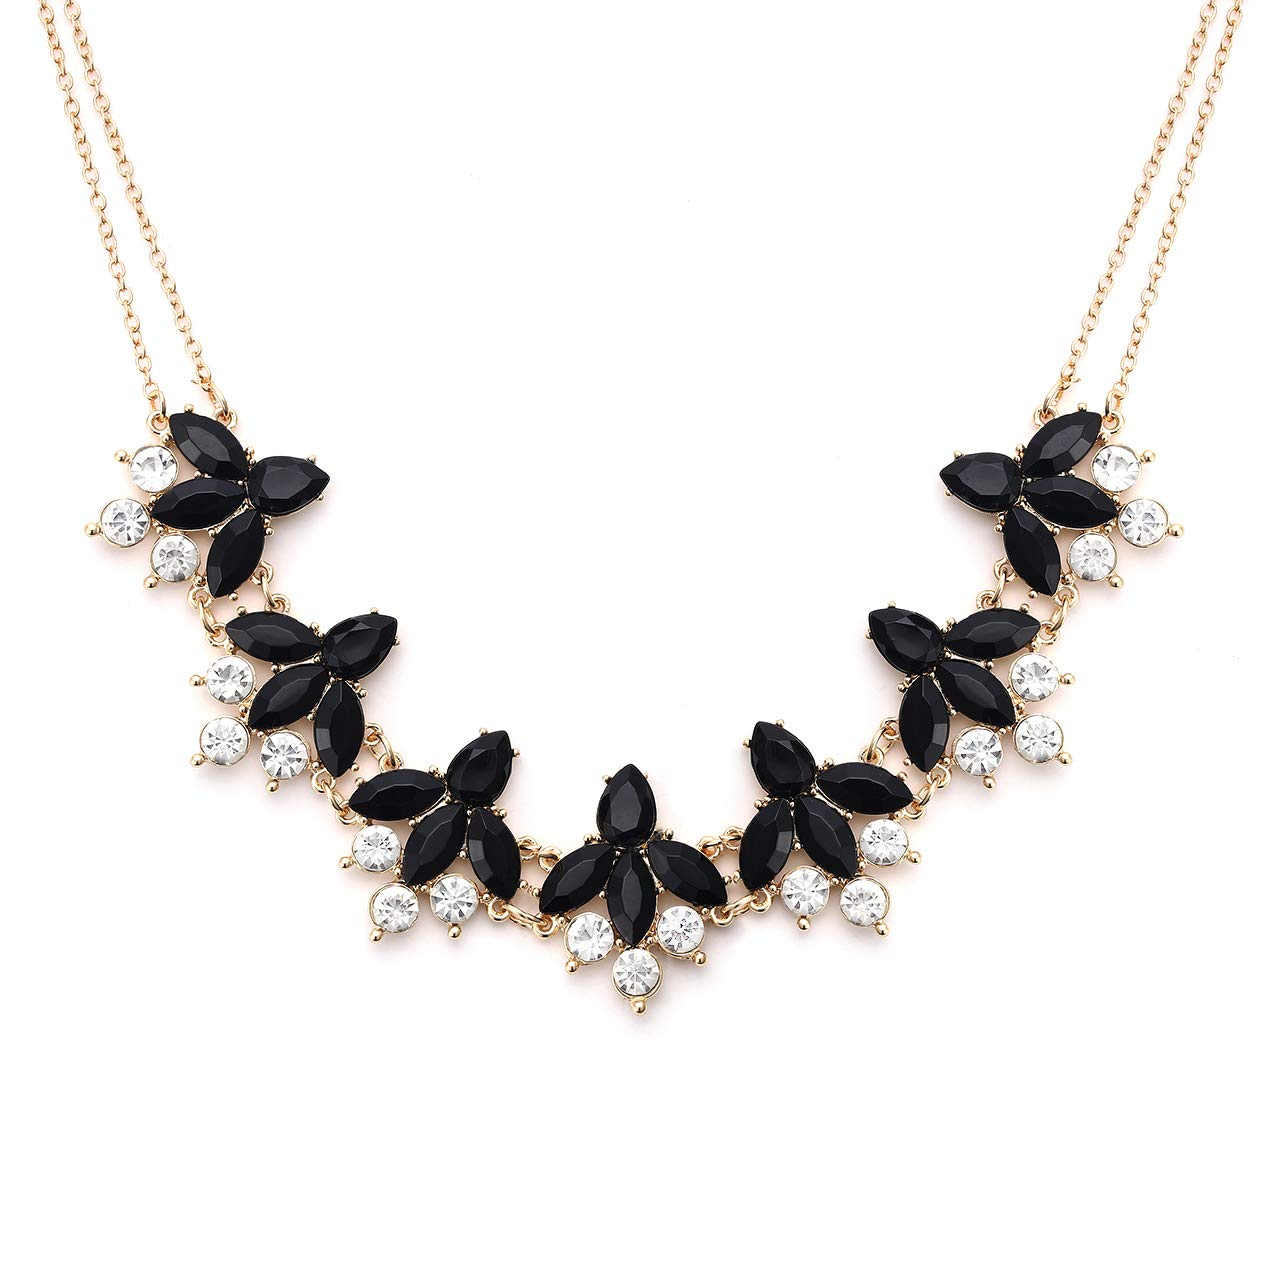 6818390a2cd91 LIAO Jewelry Crystal Flower Collar Necklace for Women Chunky Rhinestone  Floral Bib Statement Choker Necklace